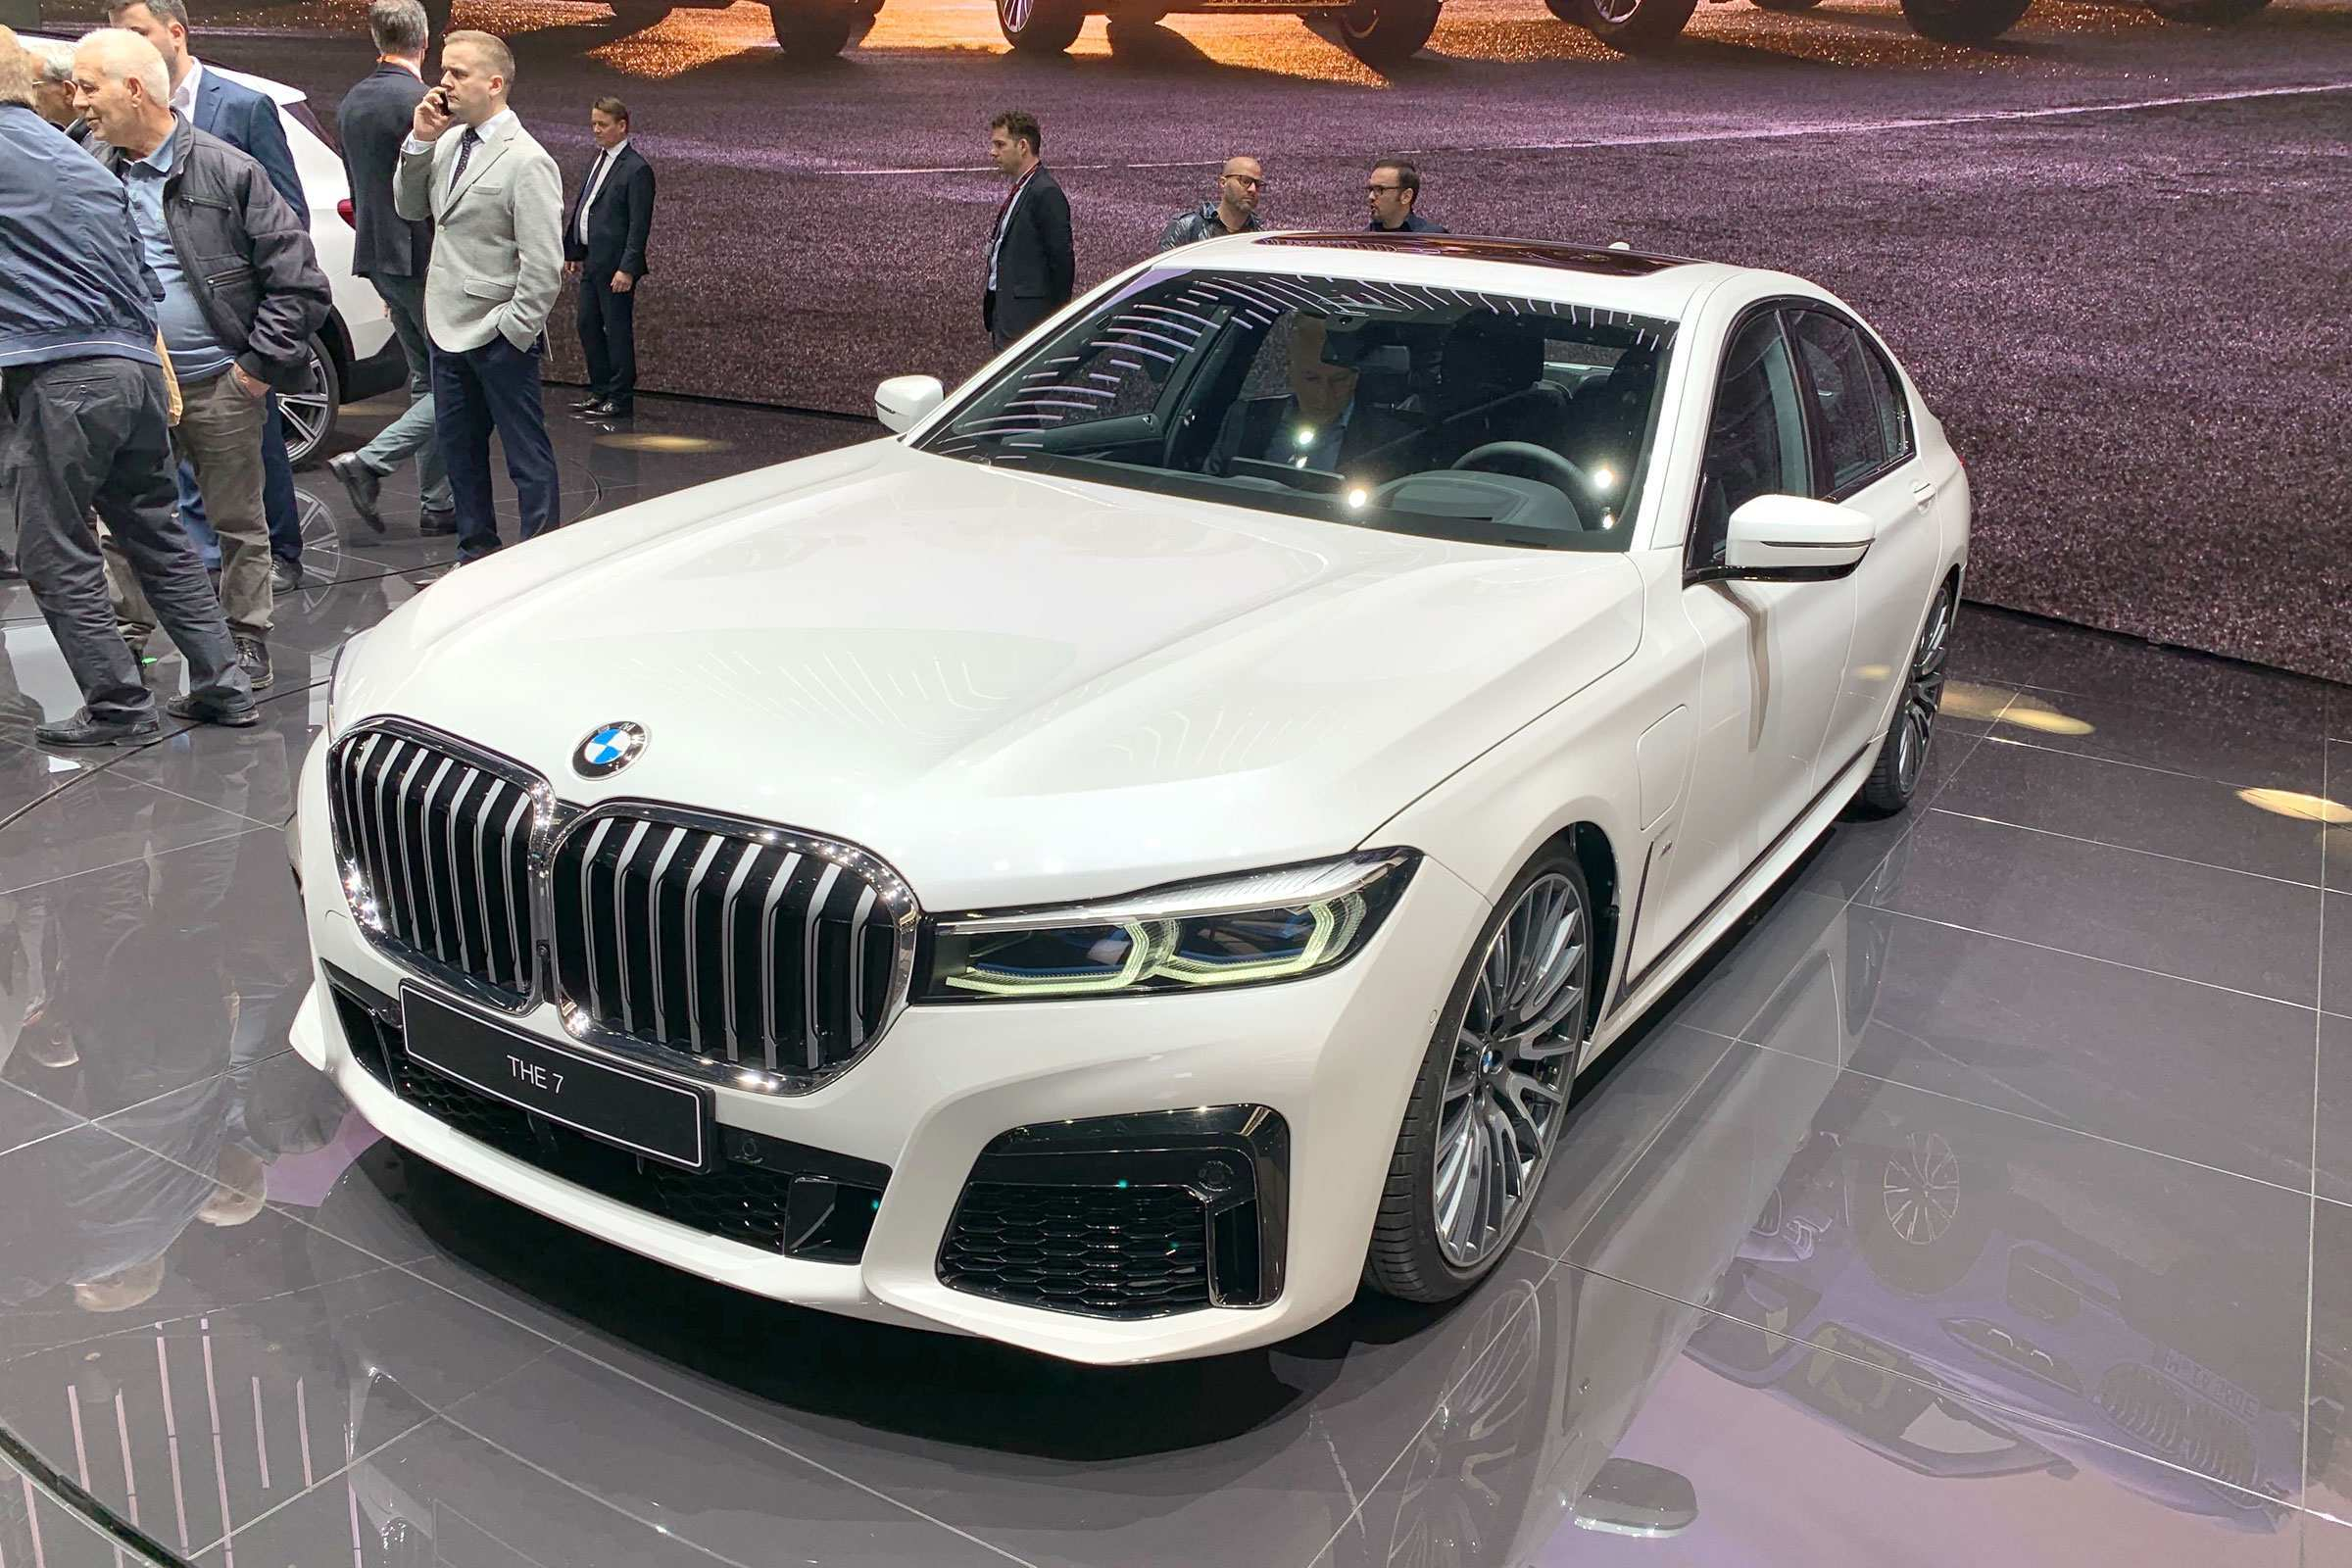 72 All New 2019 Bmw 7 Series Configurations Style